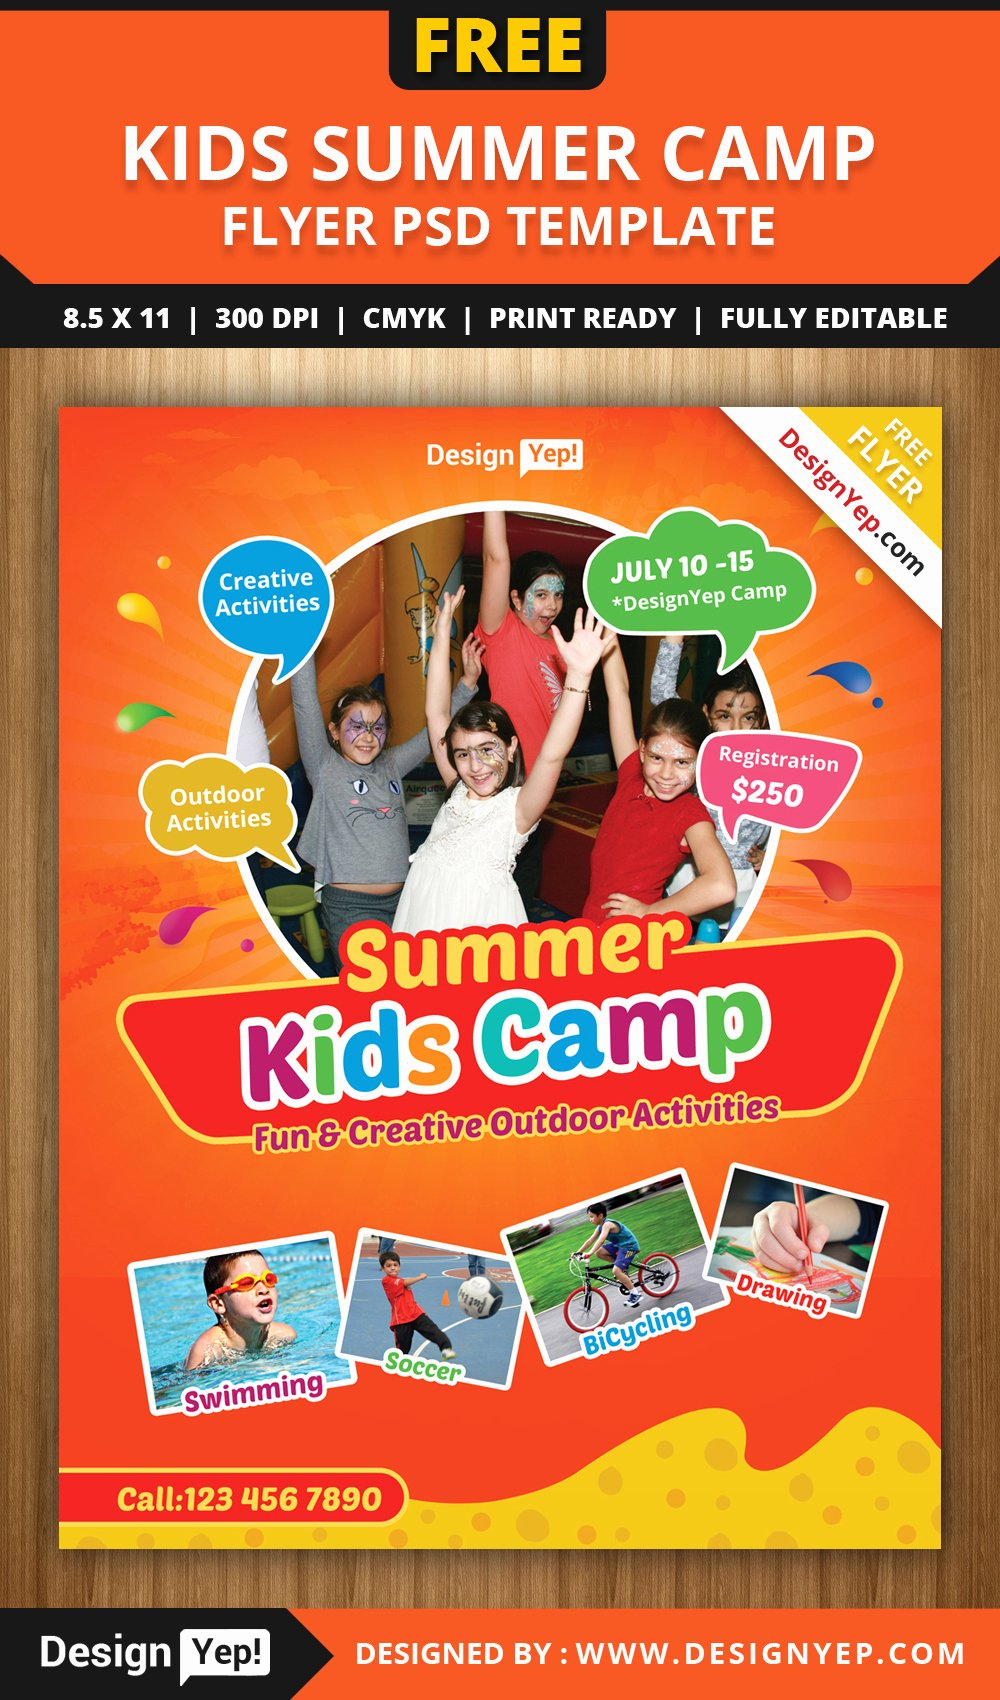 Summer Camp Flyer Template Elegant Free Kids Summer Camp Flyer Psd Template On Behance